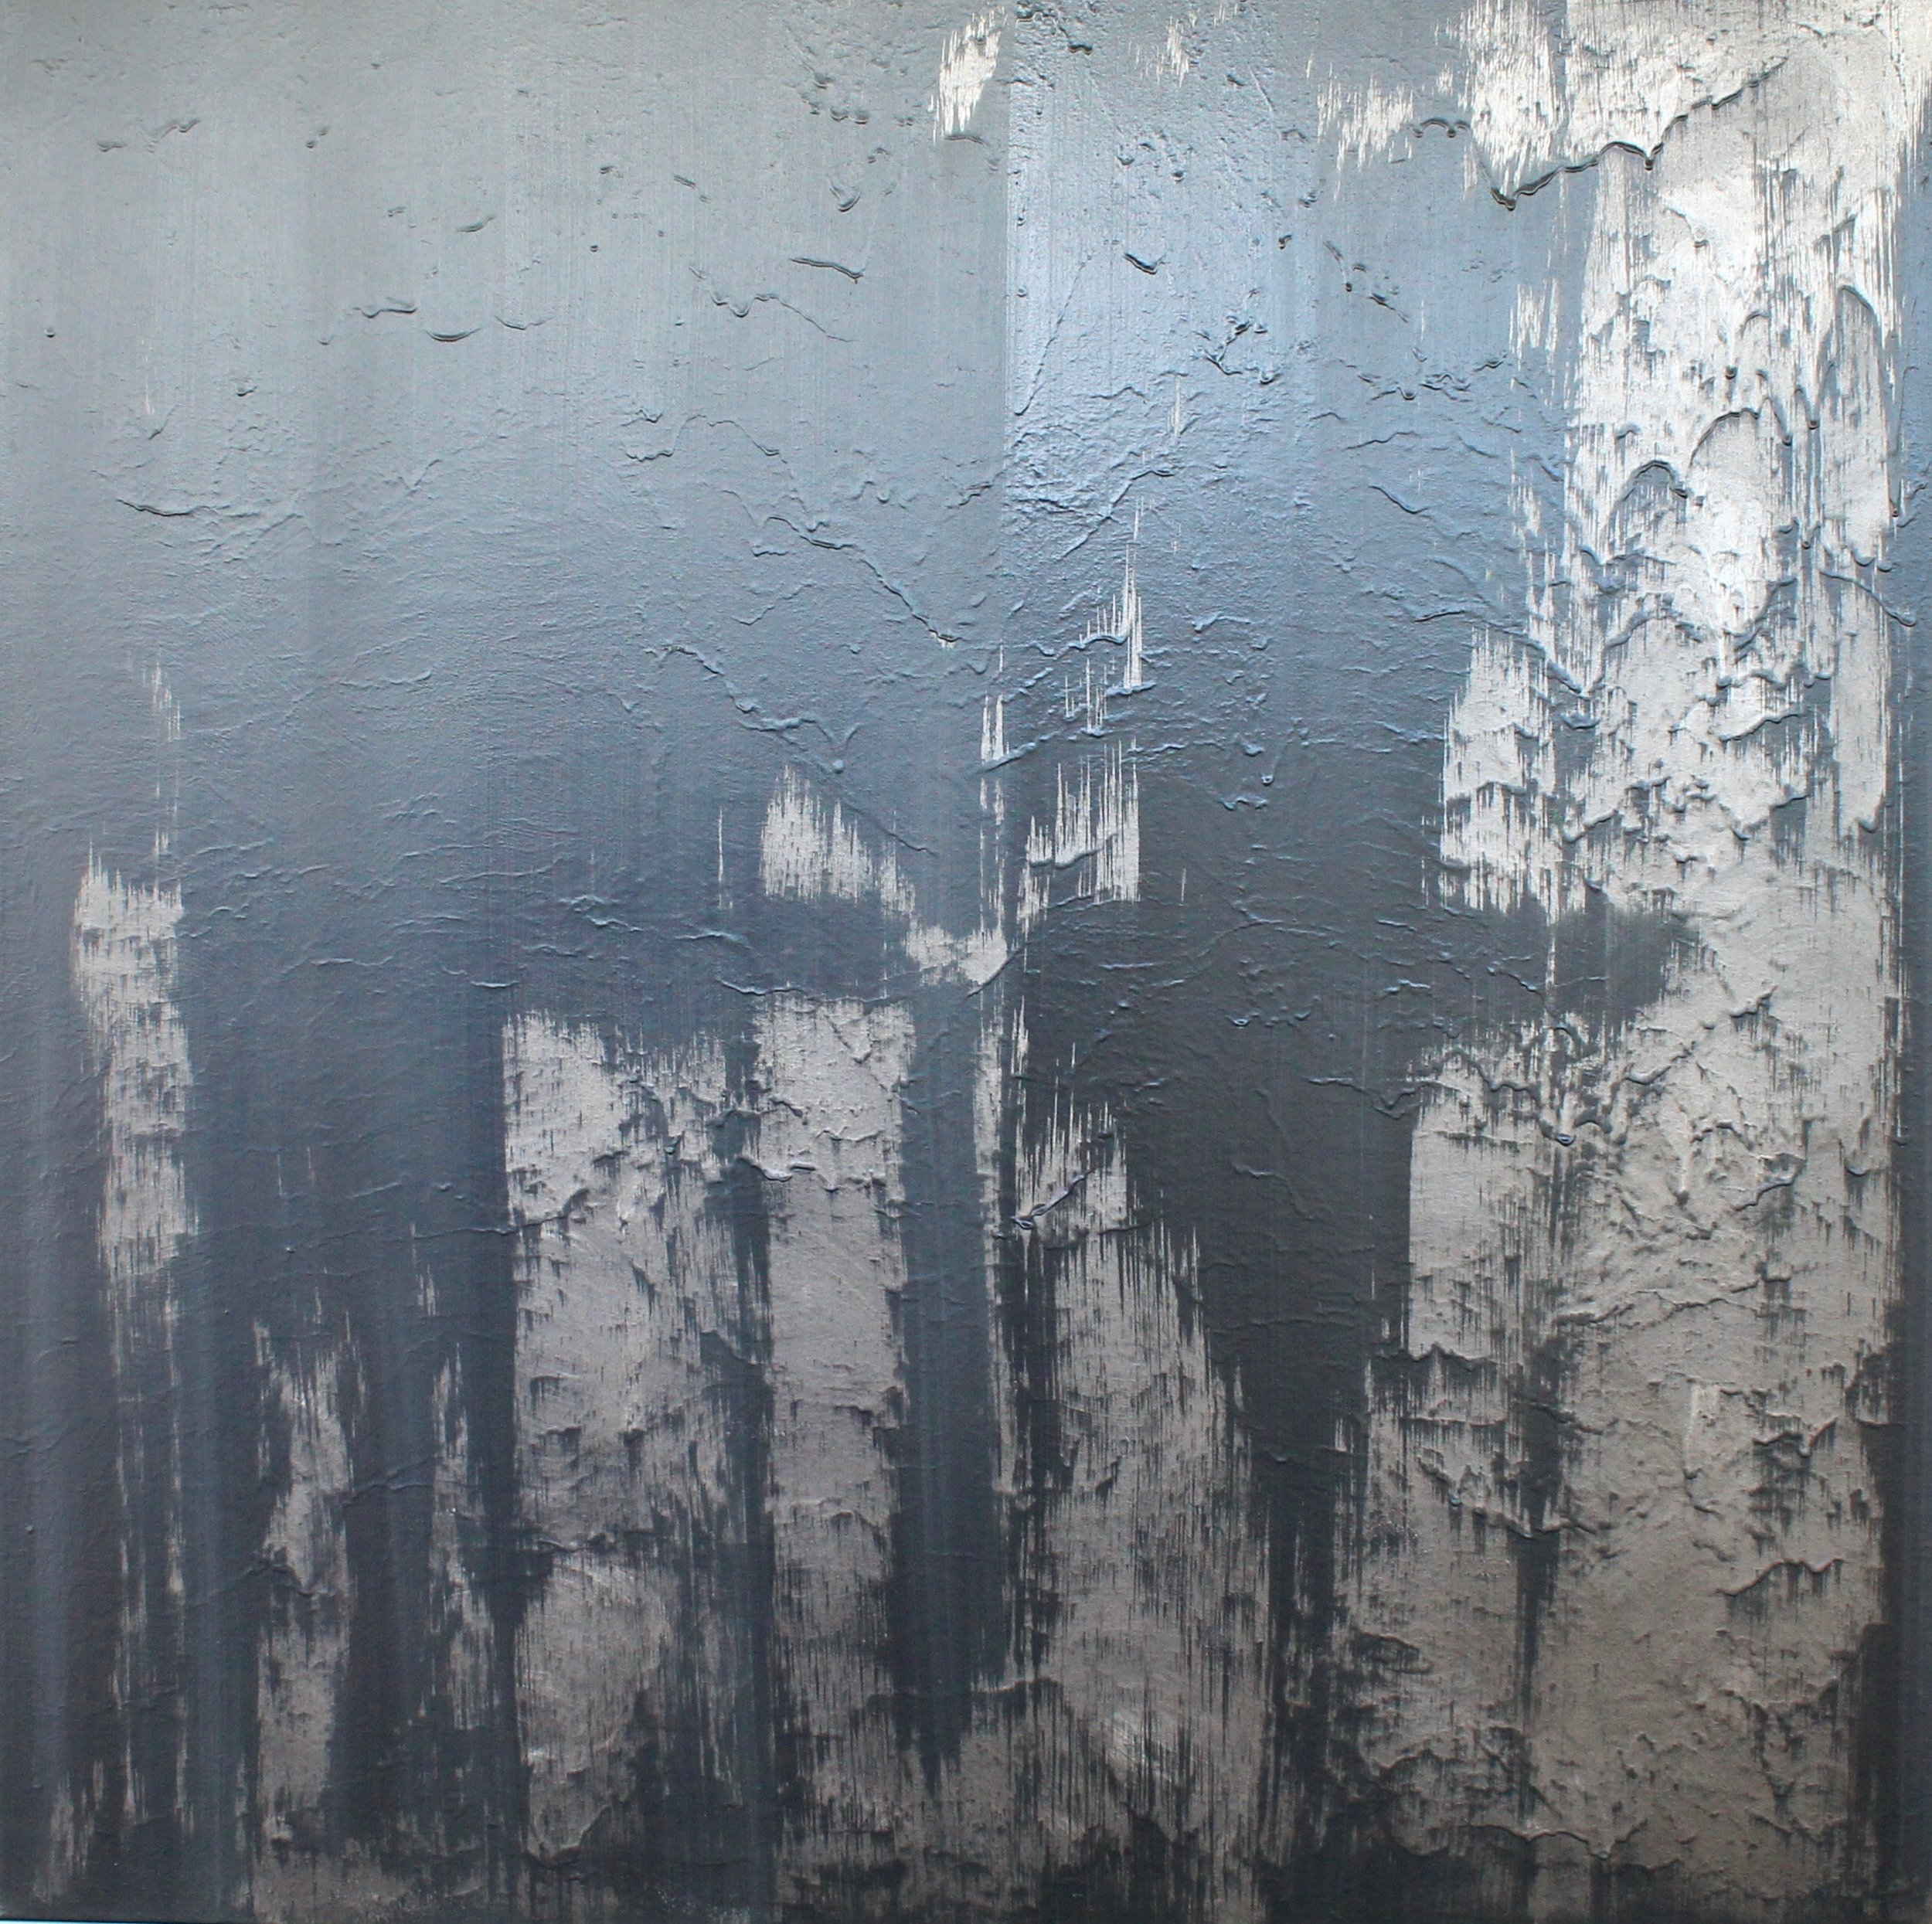 IN GOOD TIME - 1200mm x 1200mmMixed media on canvas. Textured metallic space grey, charcoal & black.